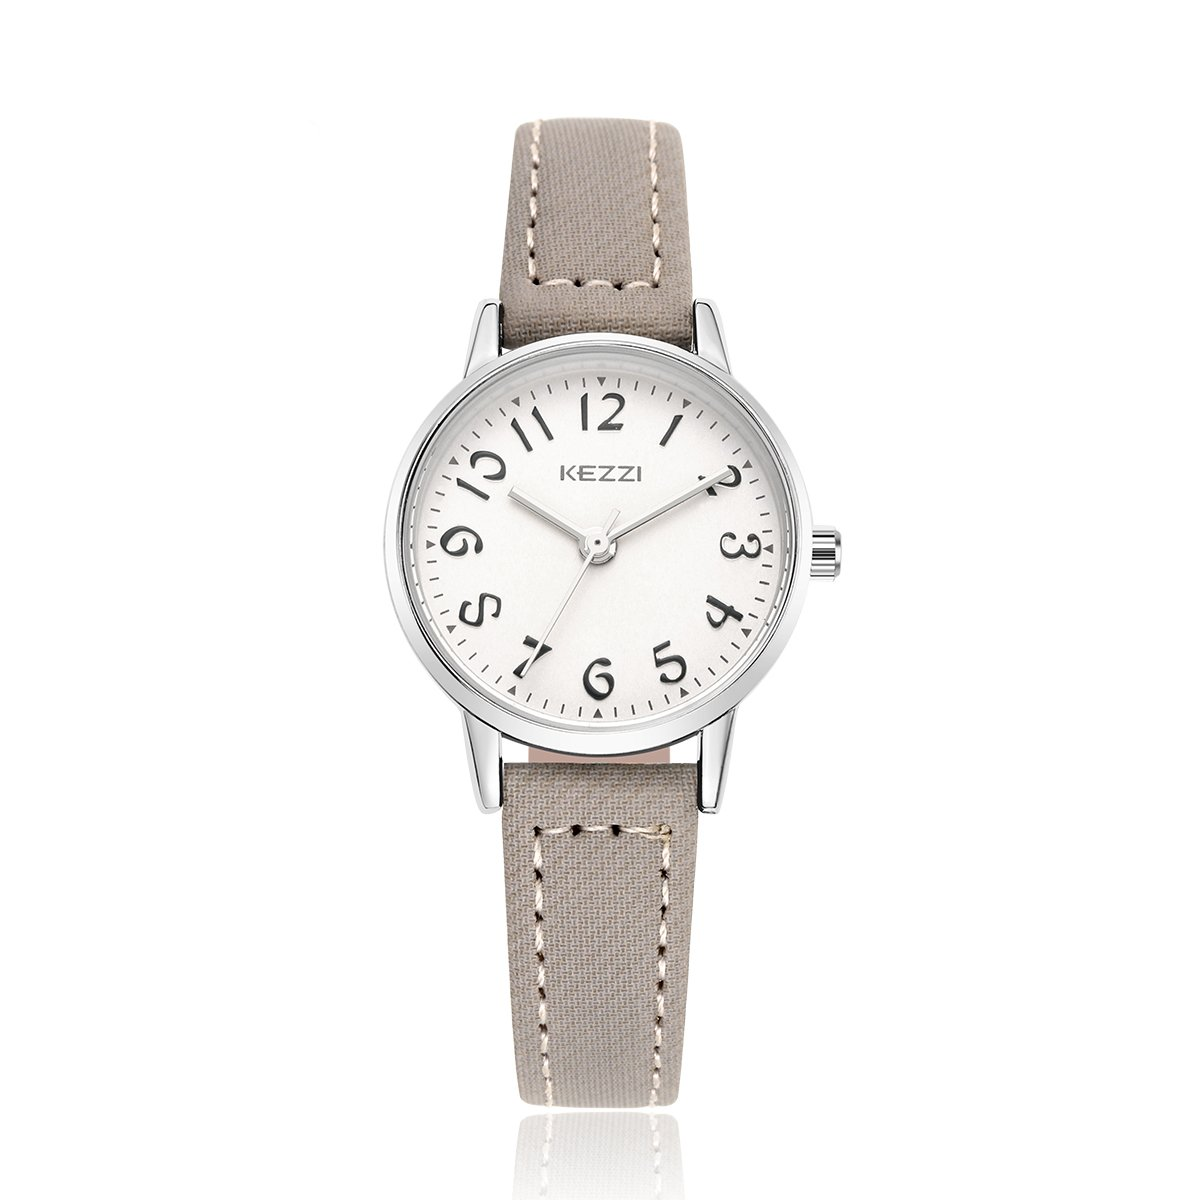 BAOSAILI Girls Quartz Watch with White Dial Analogue Display and Coffee Leather Strap (Grey)